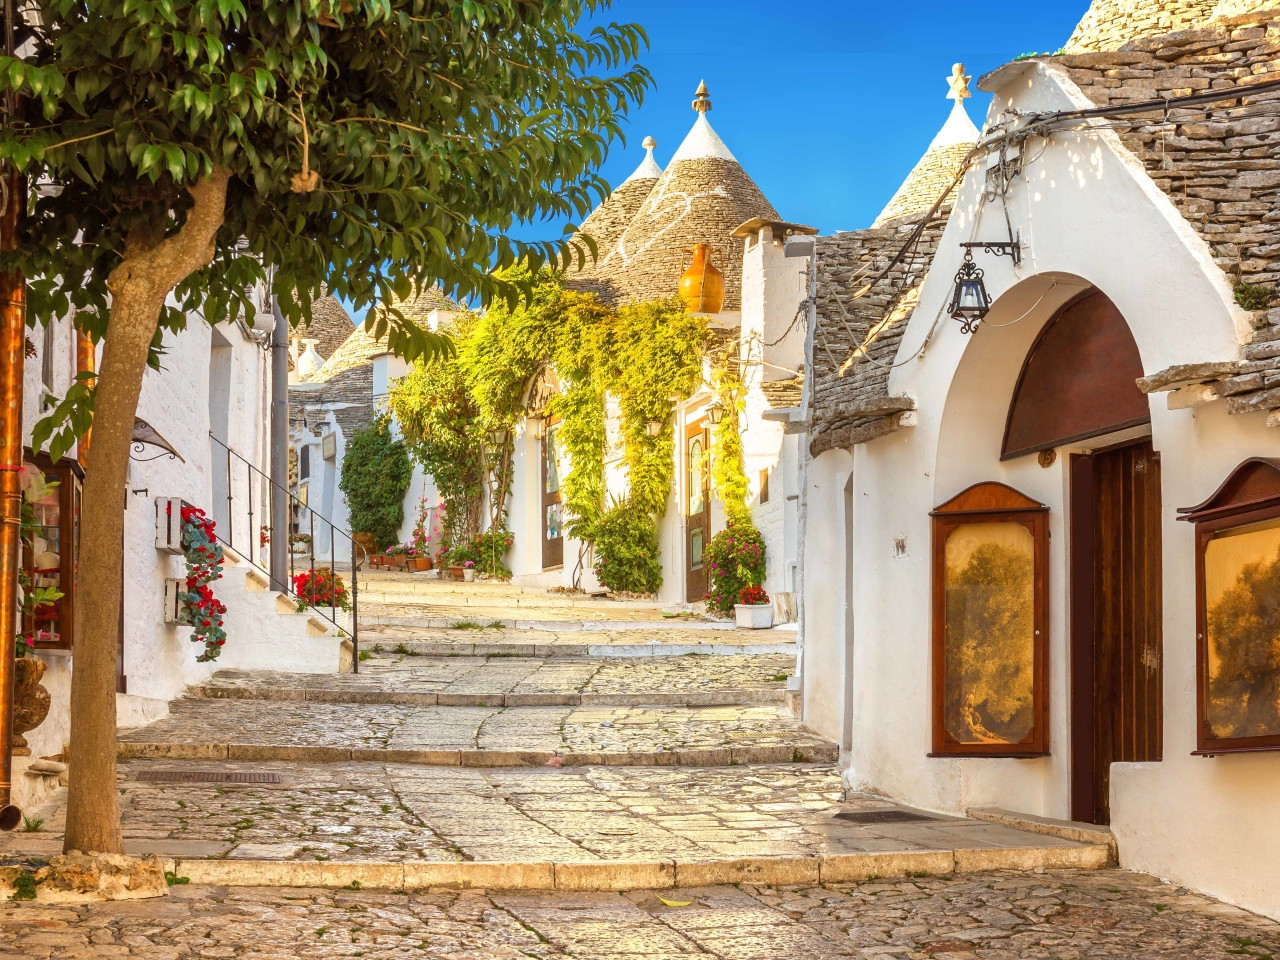 Apulia: a land of traditions and flavors | Expert Travel Team